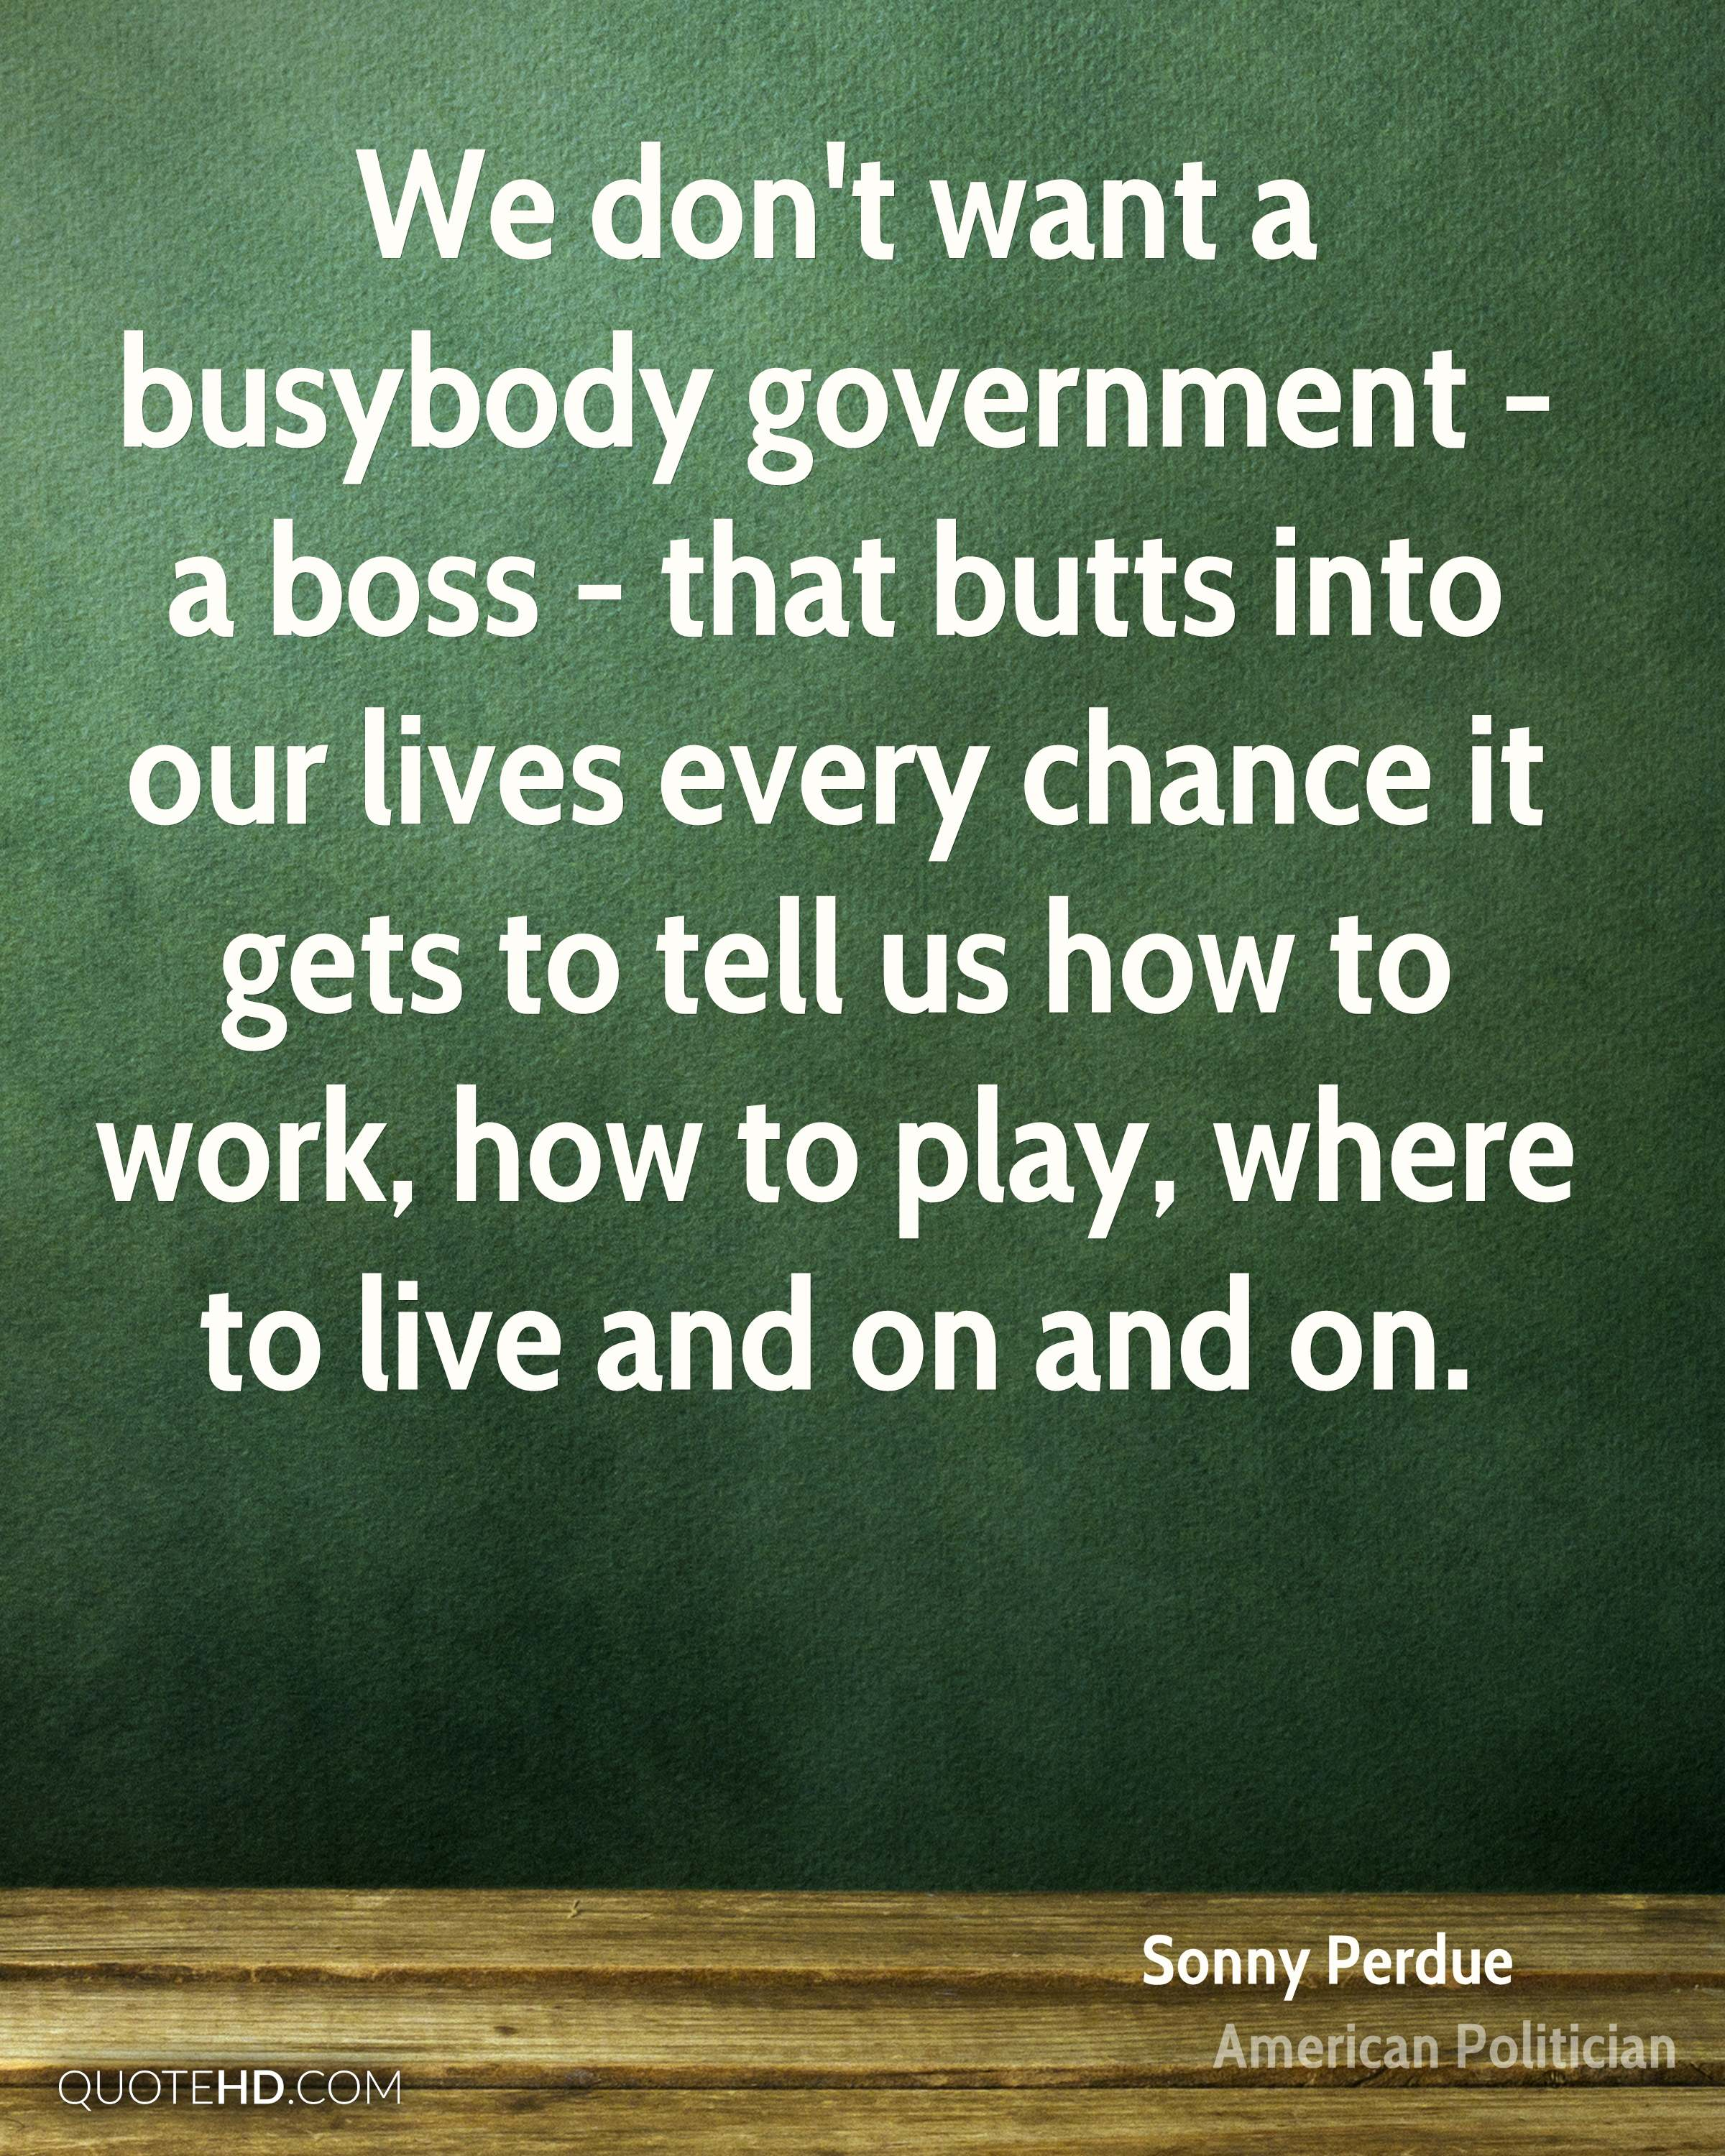 We don't want a busybody government - a boss - that butts into our lives every chance it gets to tell us how to work, how to play, where to live and on and on.